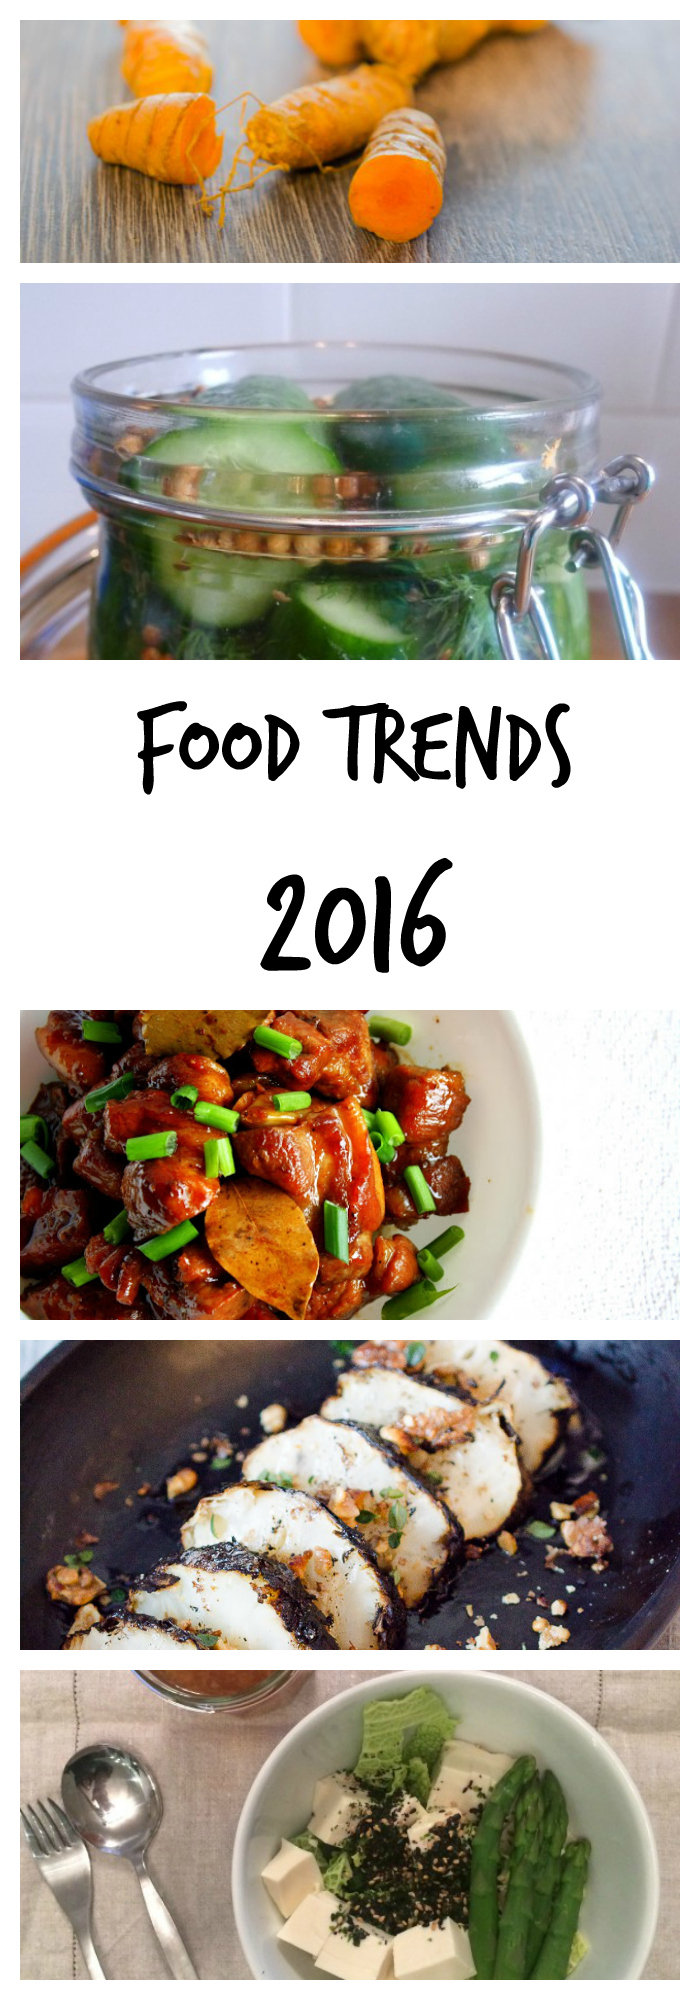 What's hot for 2016? Food Trends to look out for next year.